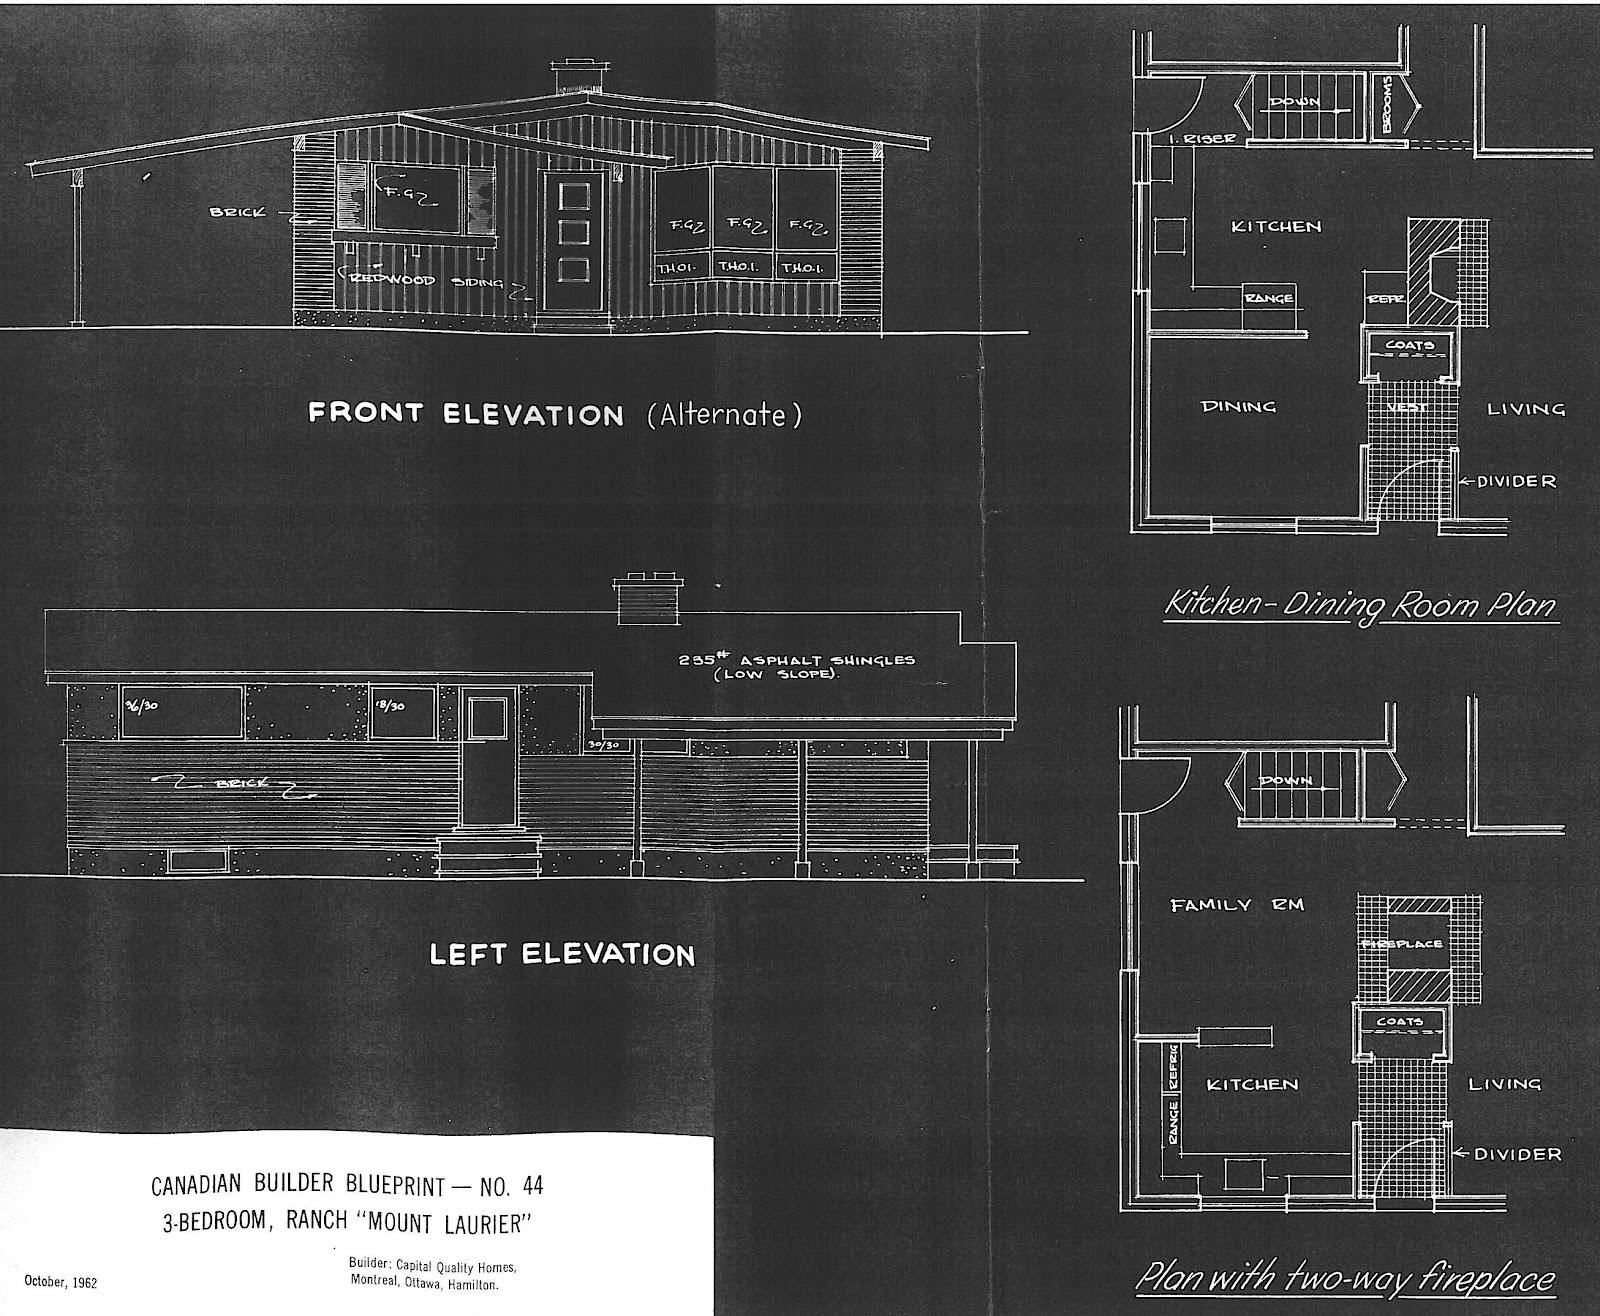 Mid century modern and 1970s era ottawa guildwood estatesurbandale i only have a few plans by these builders and they are shown below if you have any other plans for the area please let me know as i would love to share malvernweather Images